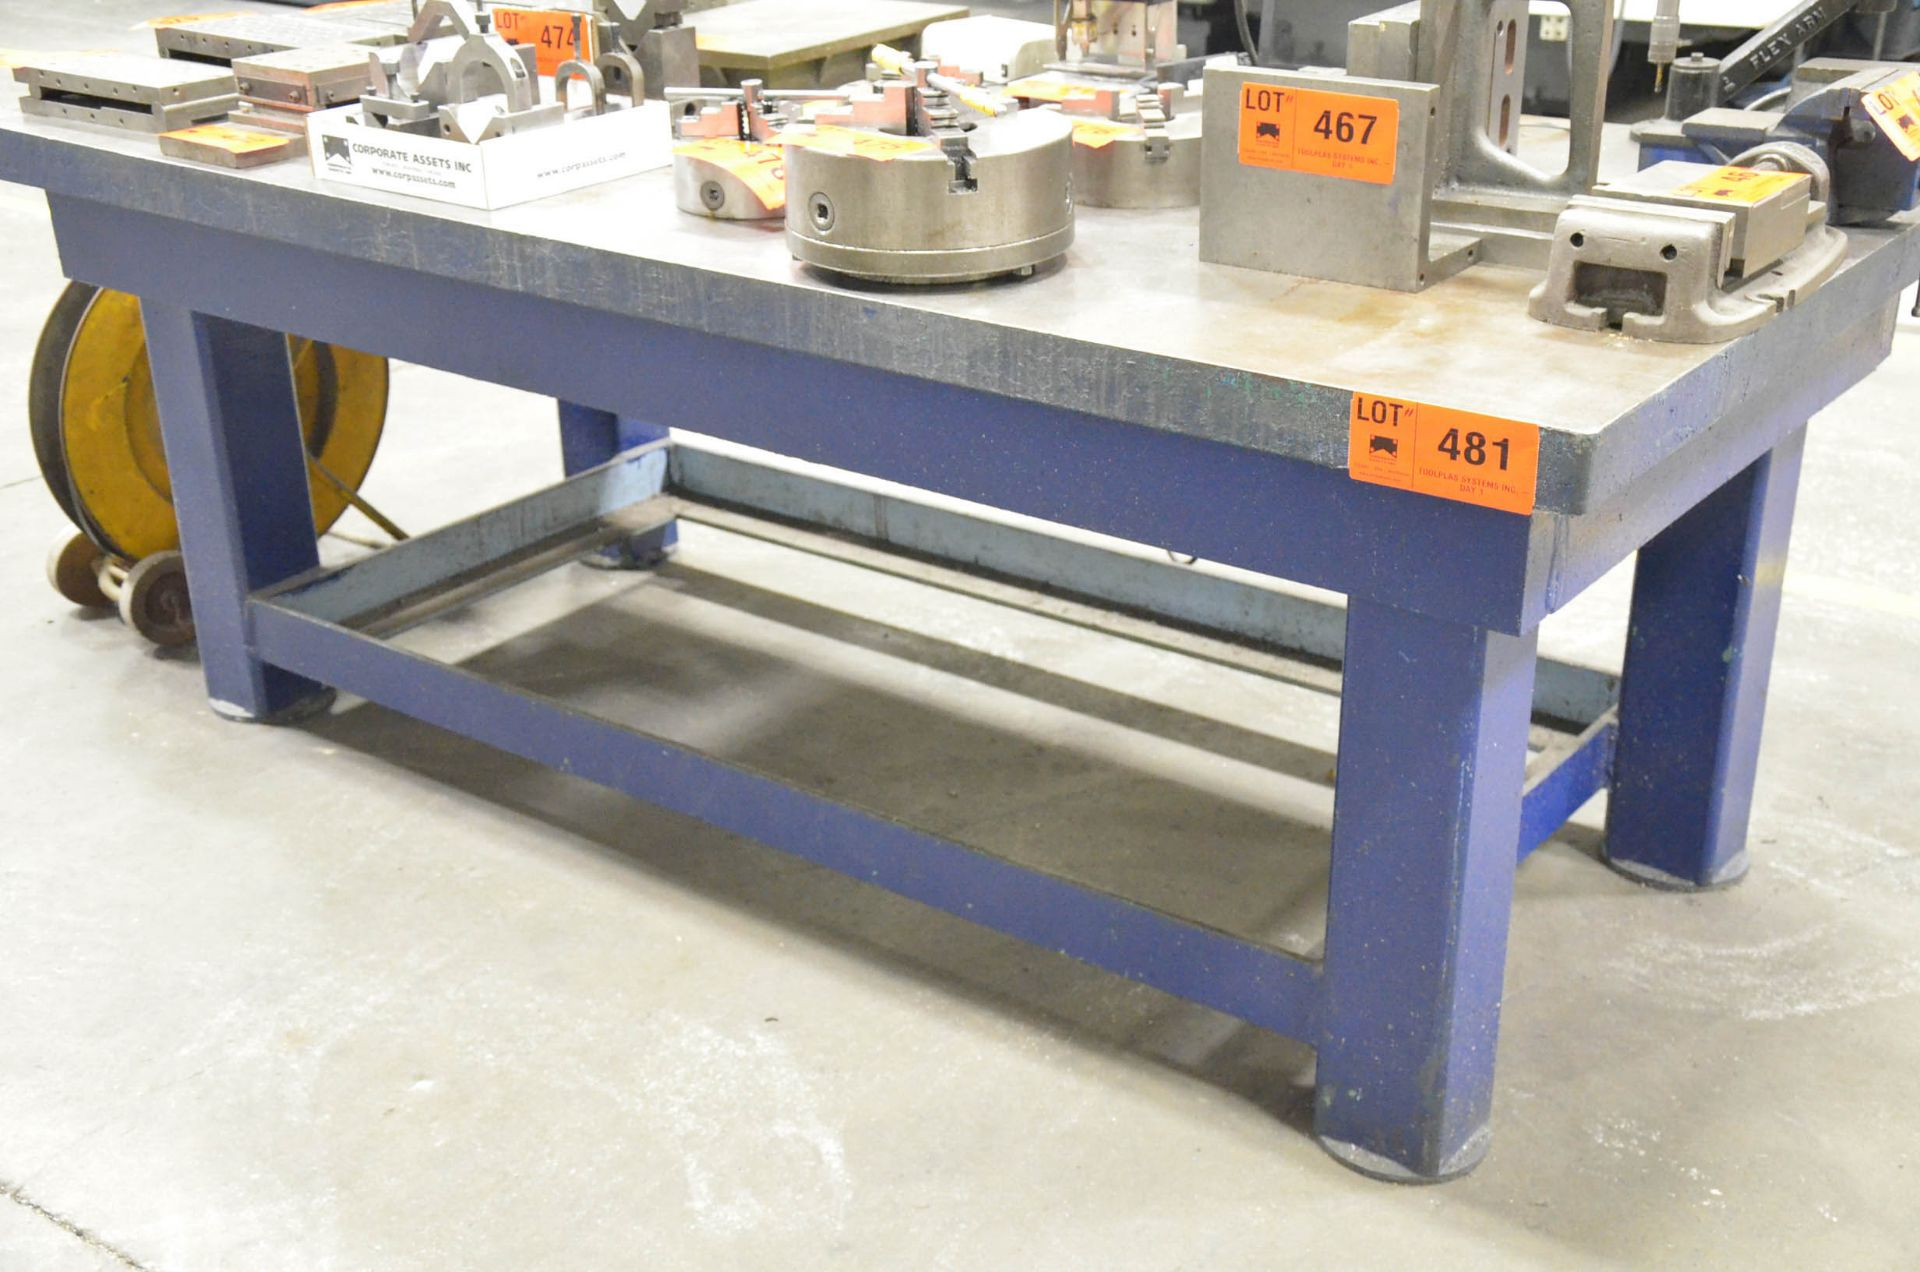 """96"""" x 48"""" x 3"""" STEEL LAYOUT TABLE (CI) [RIGGING FEES FOR LOT #481 - $25 USD PLUS APPLICABLE TAXES]"""